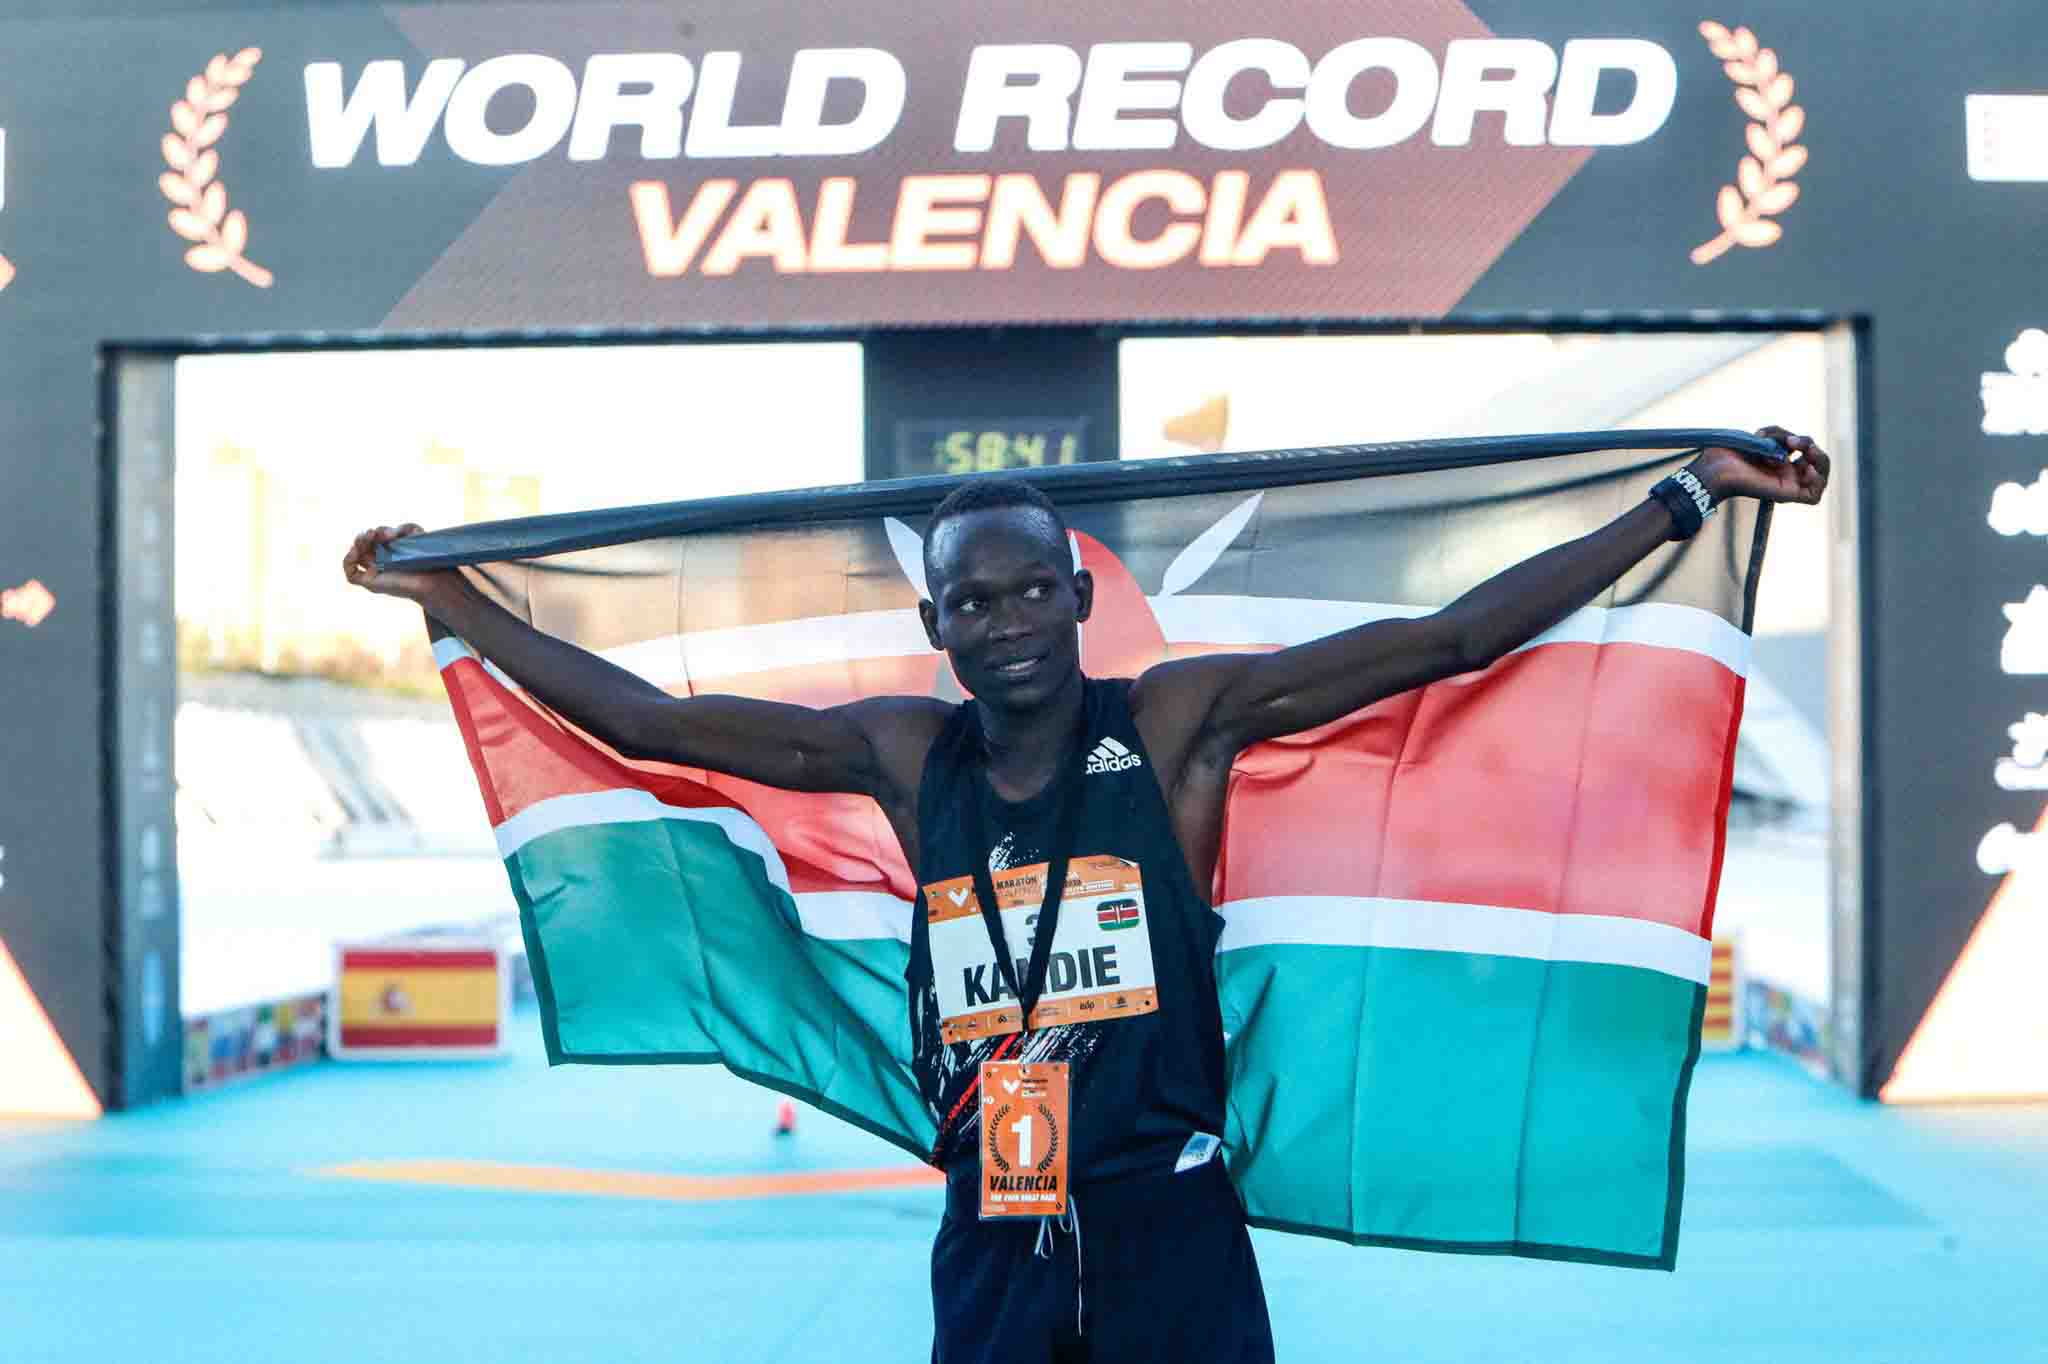 'Make little more room in the history books' – World reacts to Kibiwott Kandie's win in Valencia